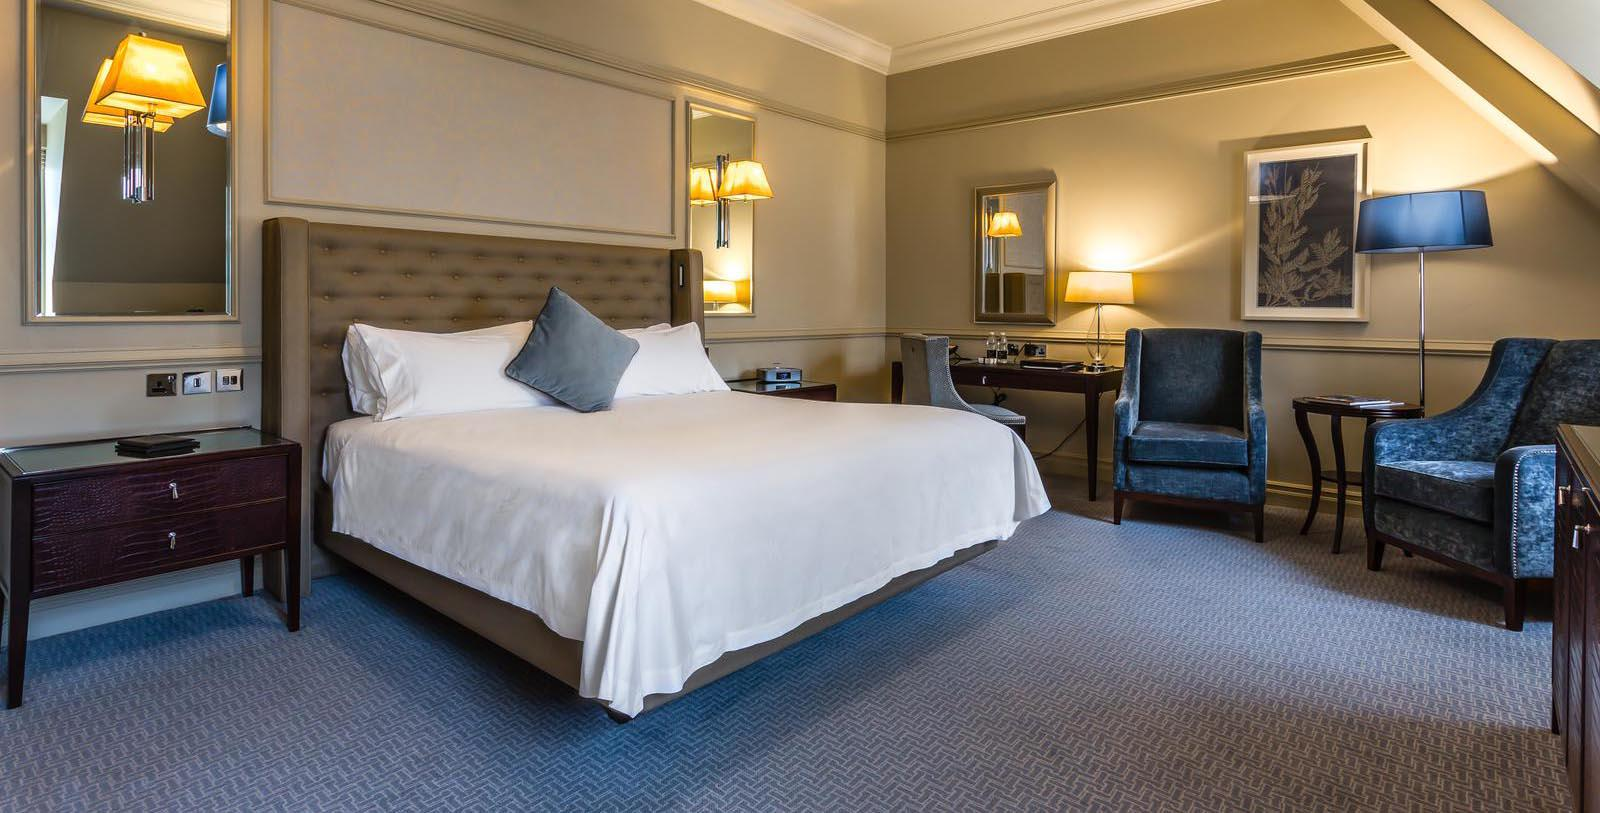 Image of Guestroom at Waldorf Astoria Edinburgh - The Caledonian, 1903, Member of Historic Hotels Worldwide, in Edinburgh, Scotland, United Kingdom, Location Map